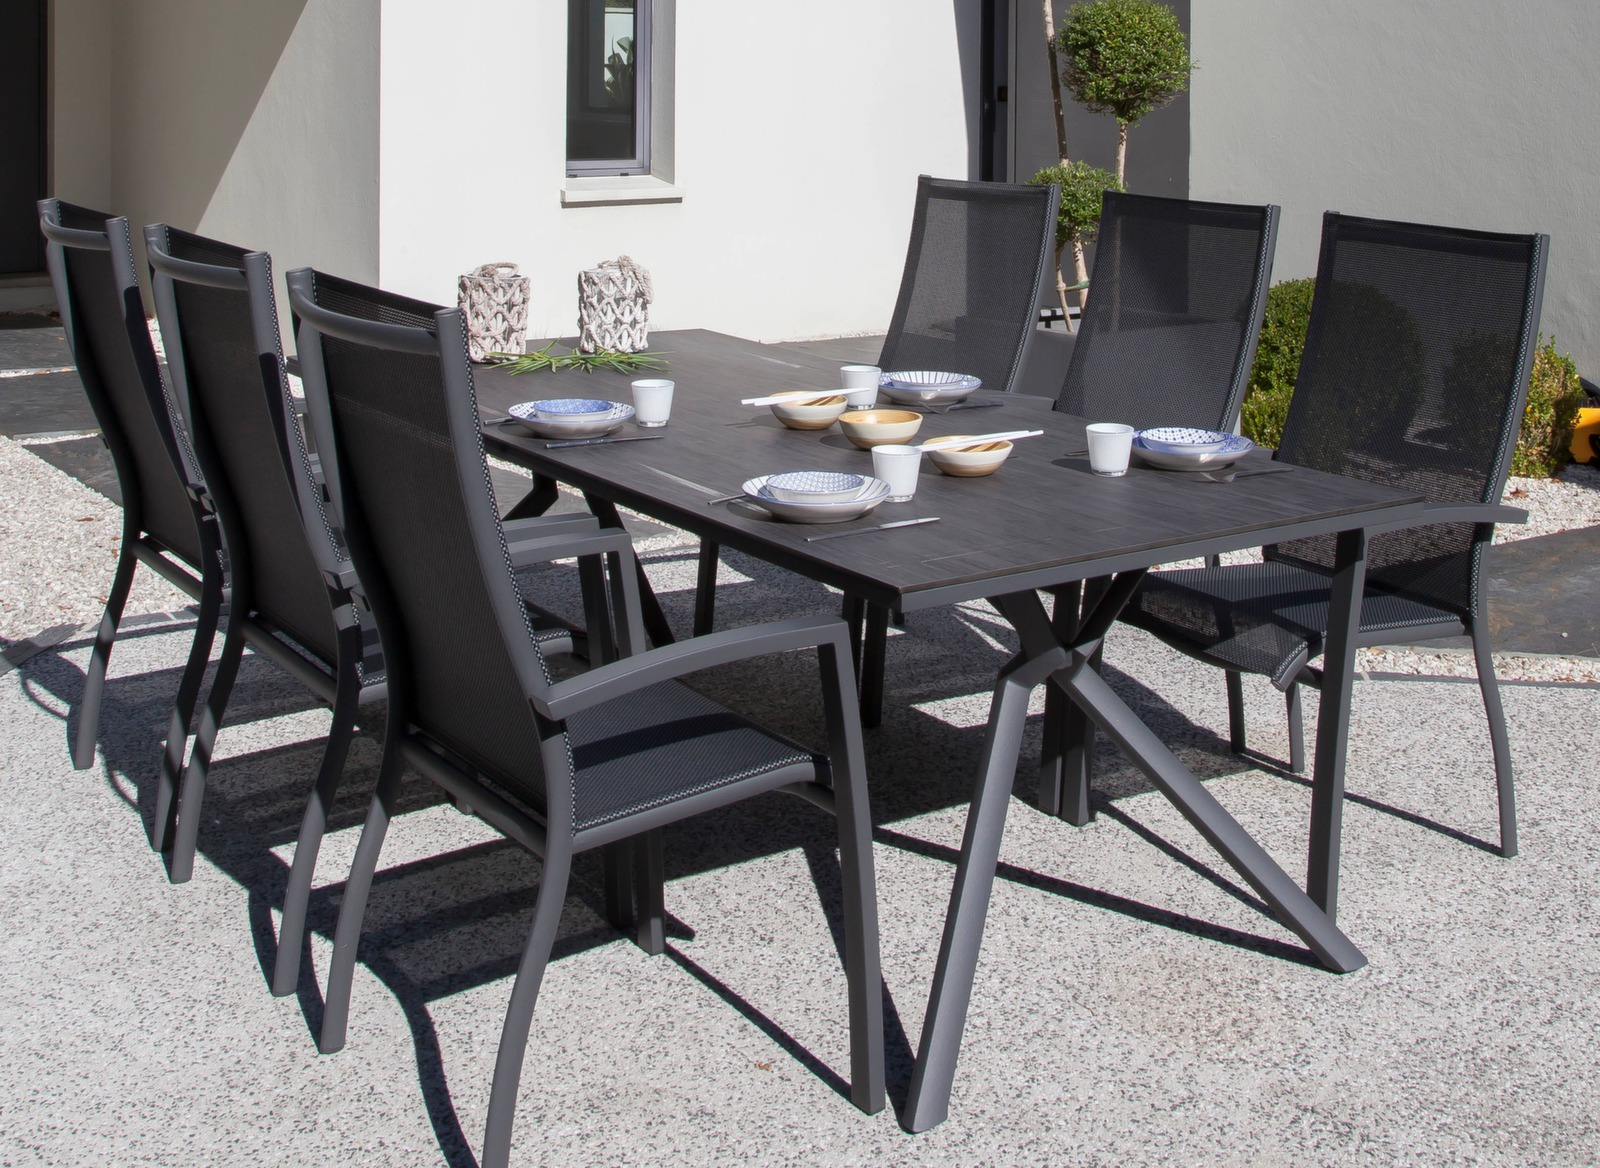 table loane 210 cm plateau trespa finition poxy tables de jardin meubles de jardin en. Black Bedroom Furniture Sets. Home Design Ideas